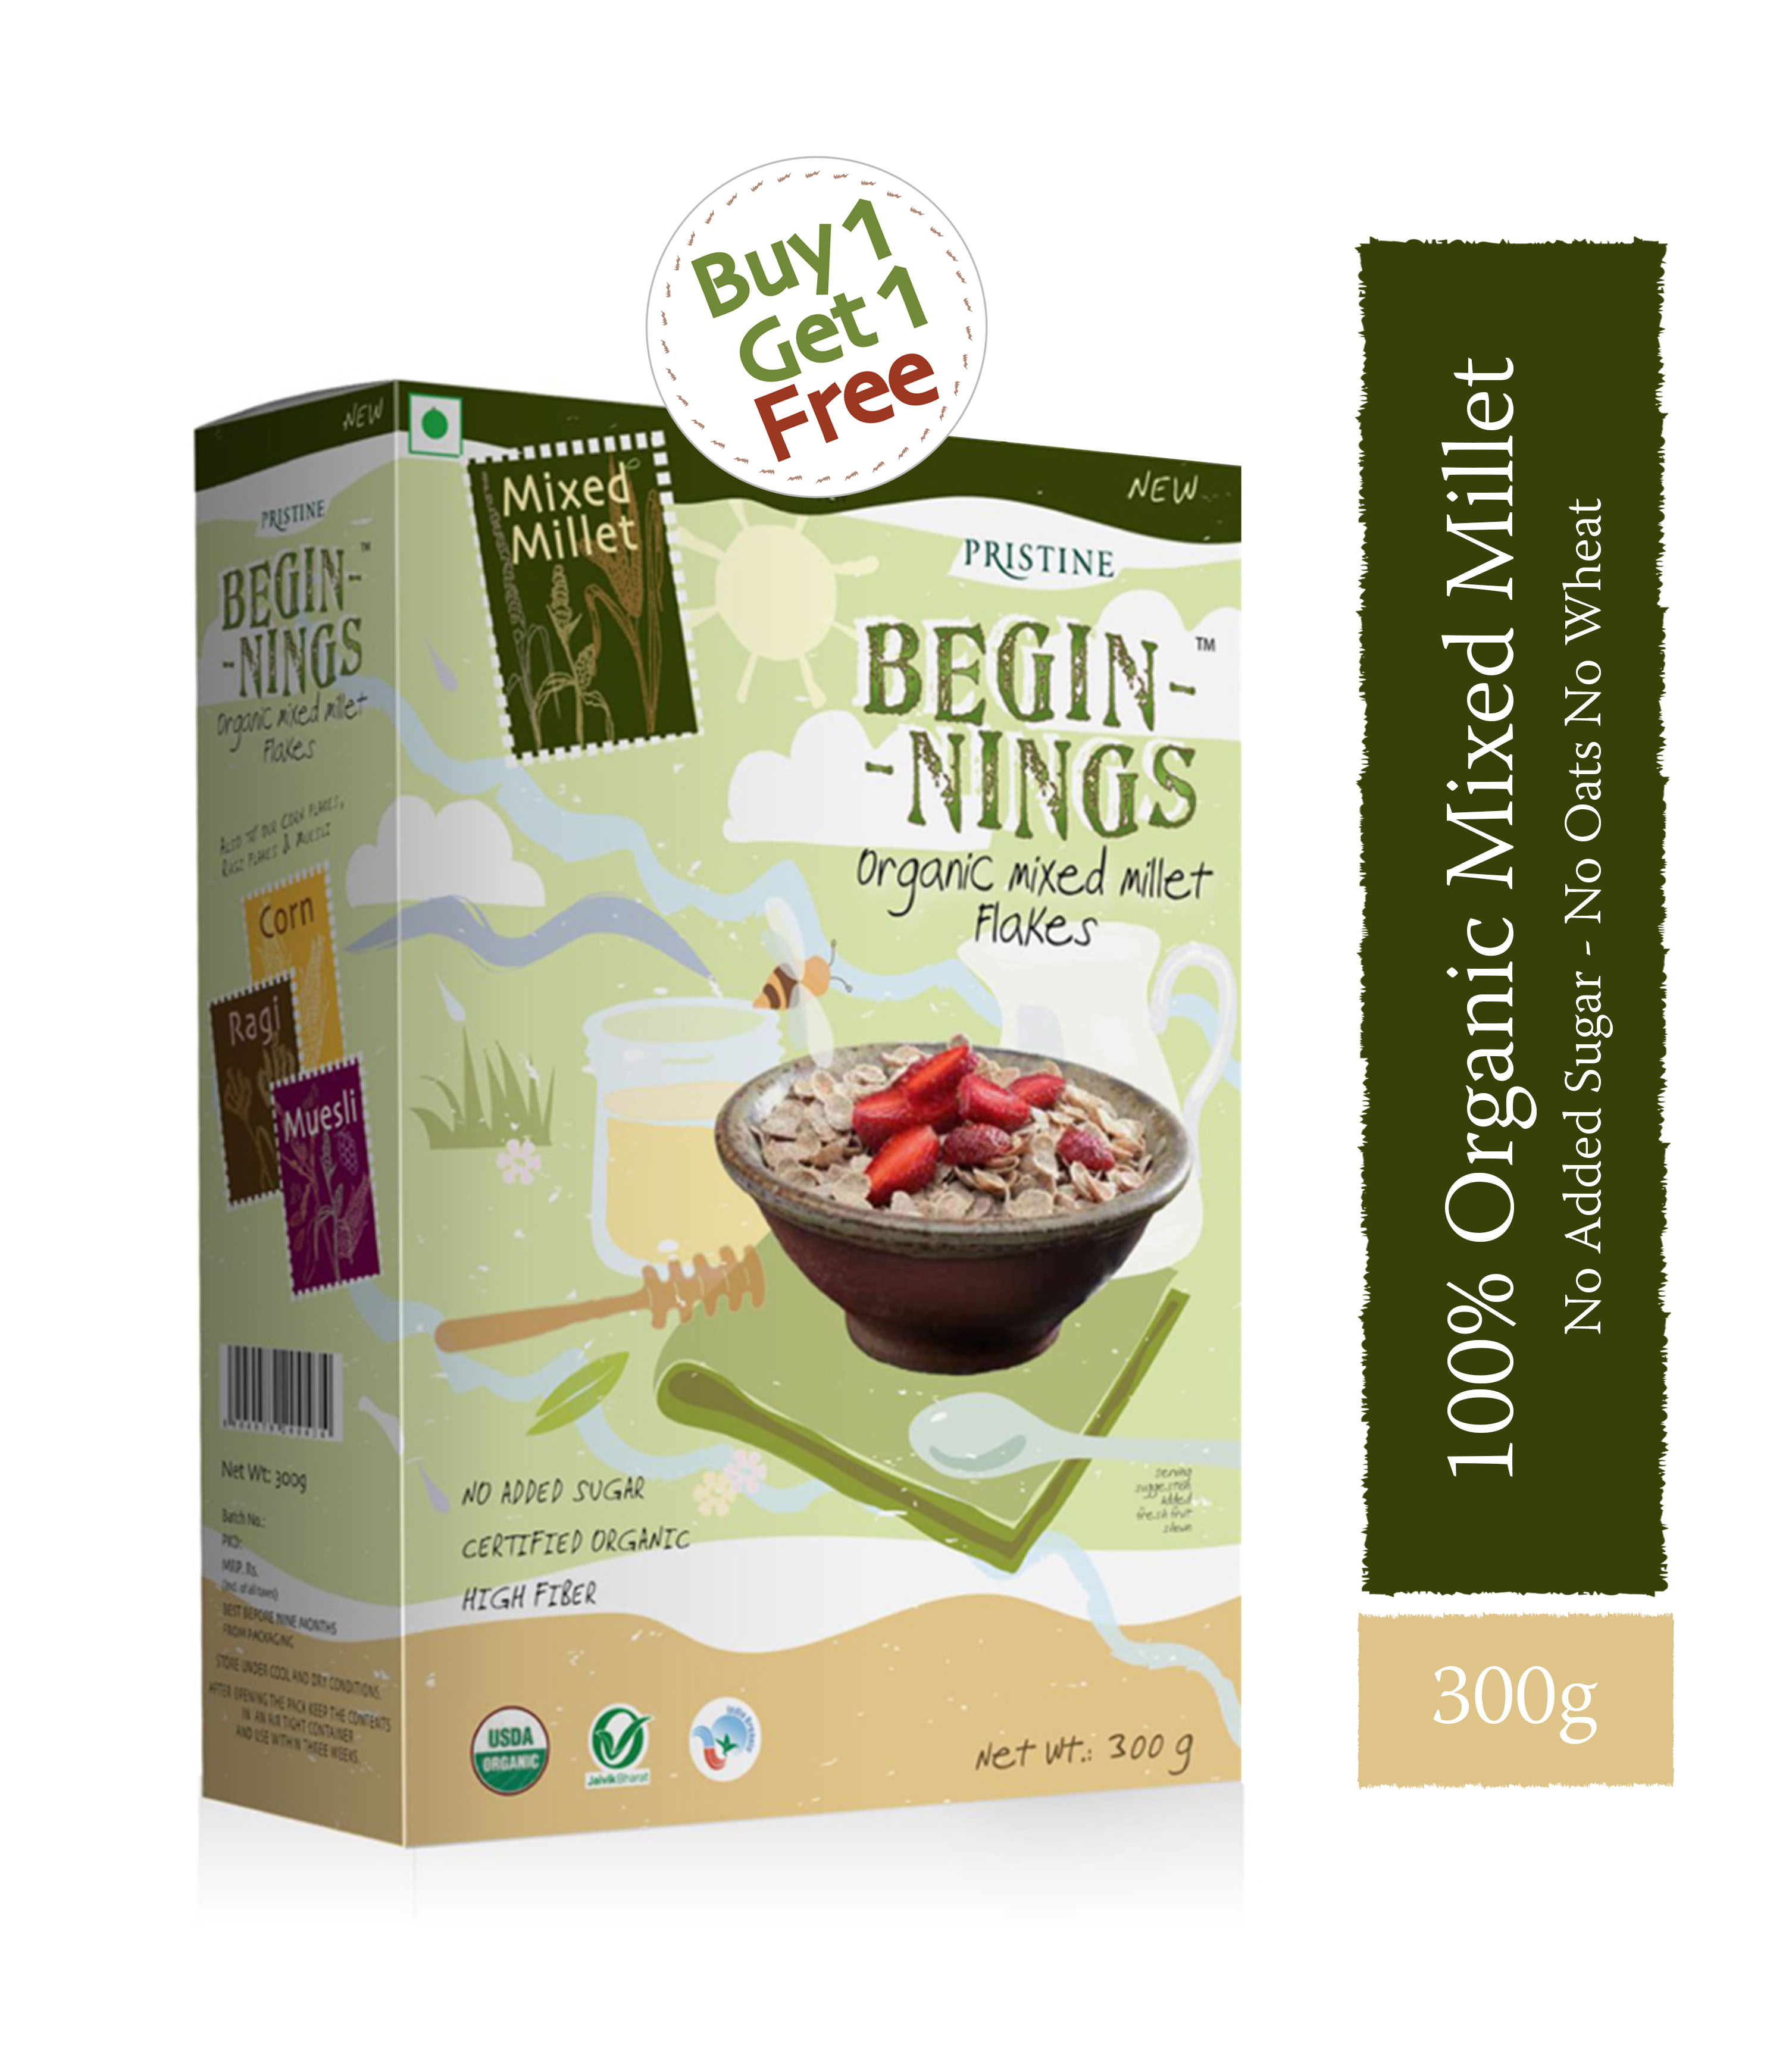 Buy Organic Mixed Millet Flakes, Beginnings,Healthy Breakfast,Pristine